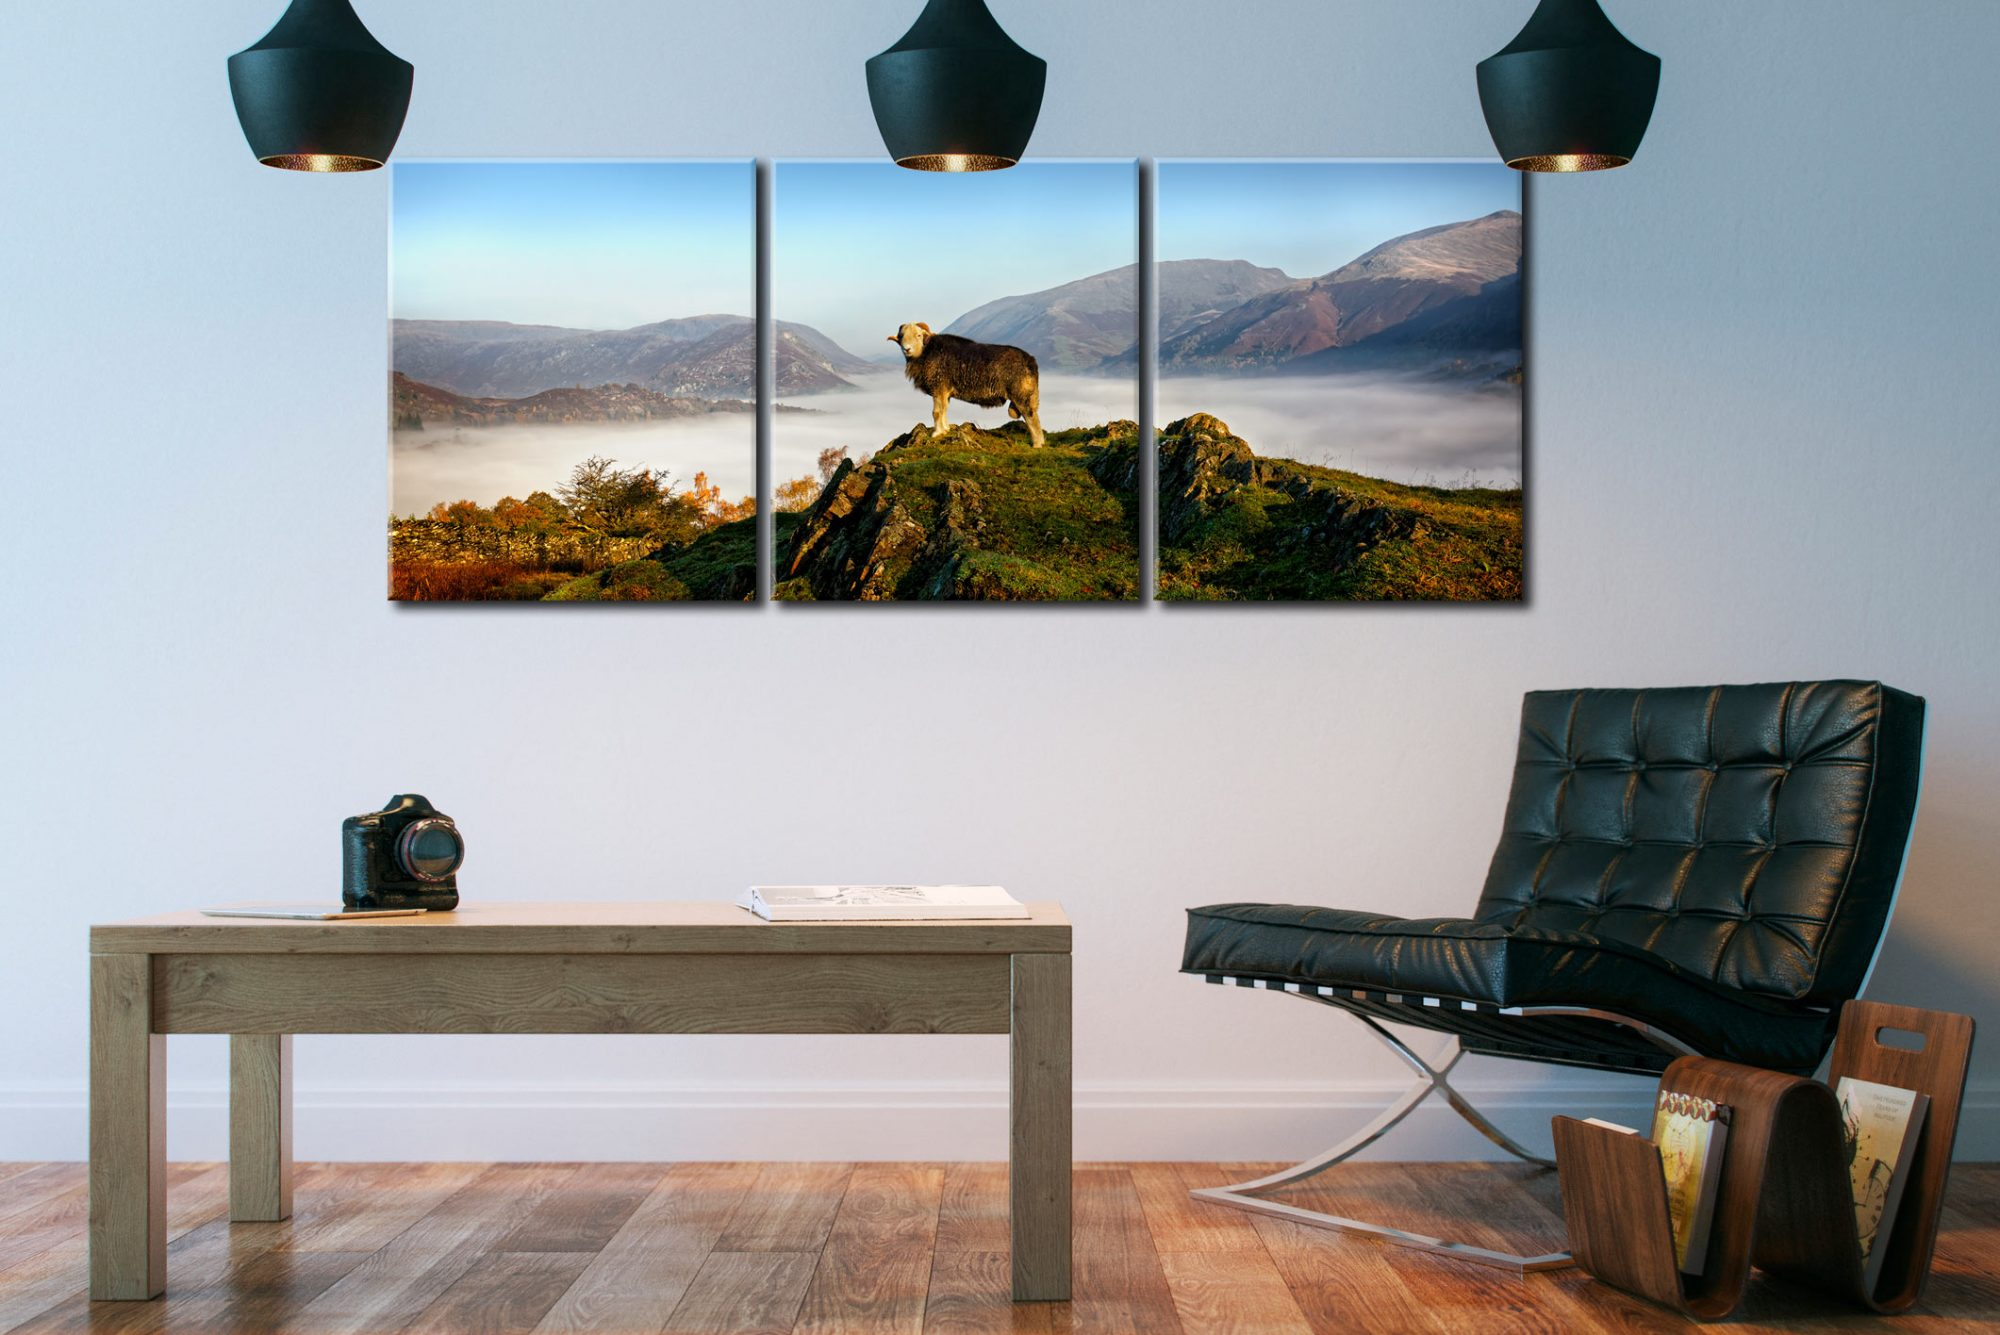 King of Cumbria - 3 Panel Canvas on Wall